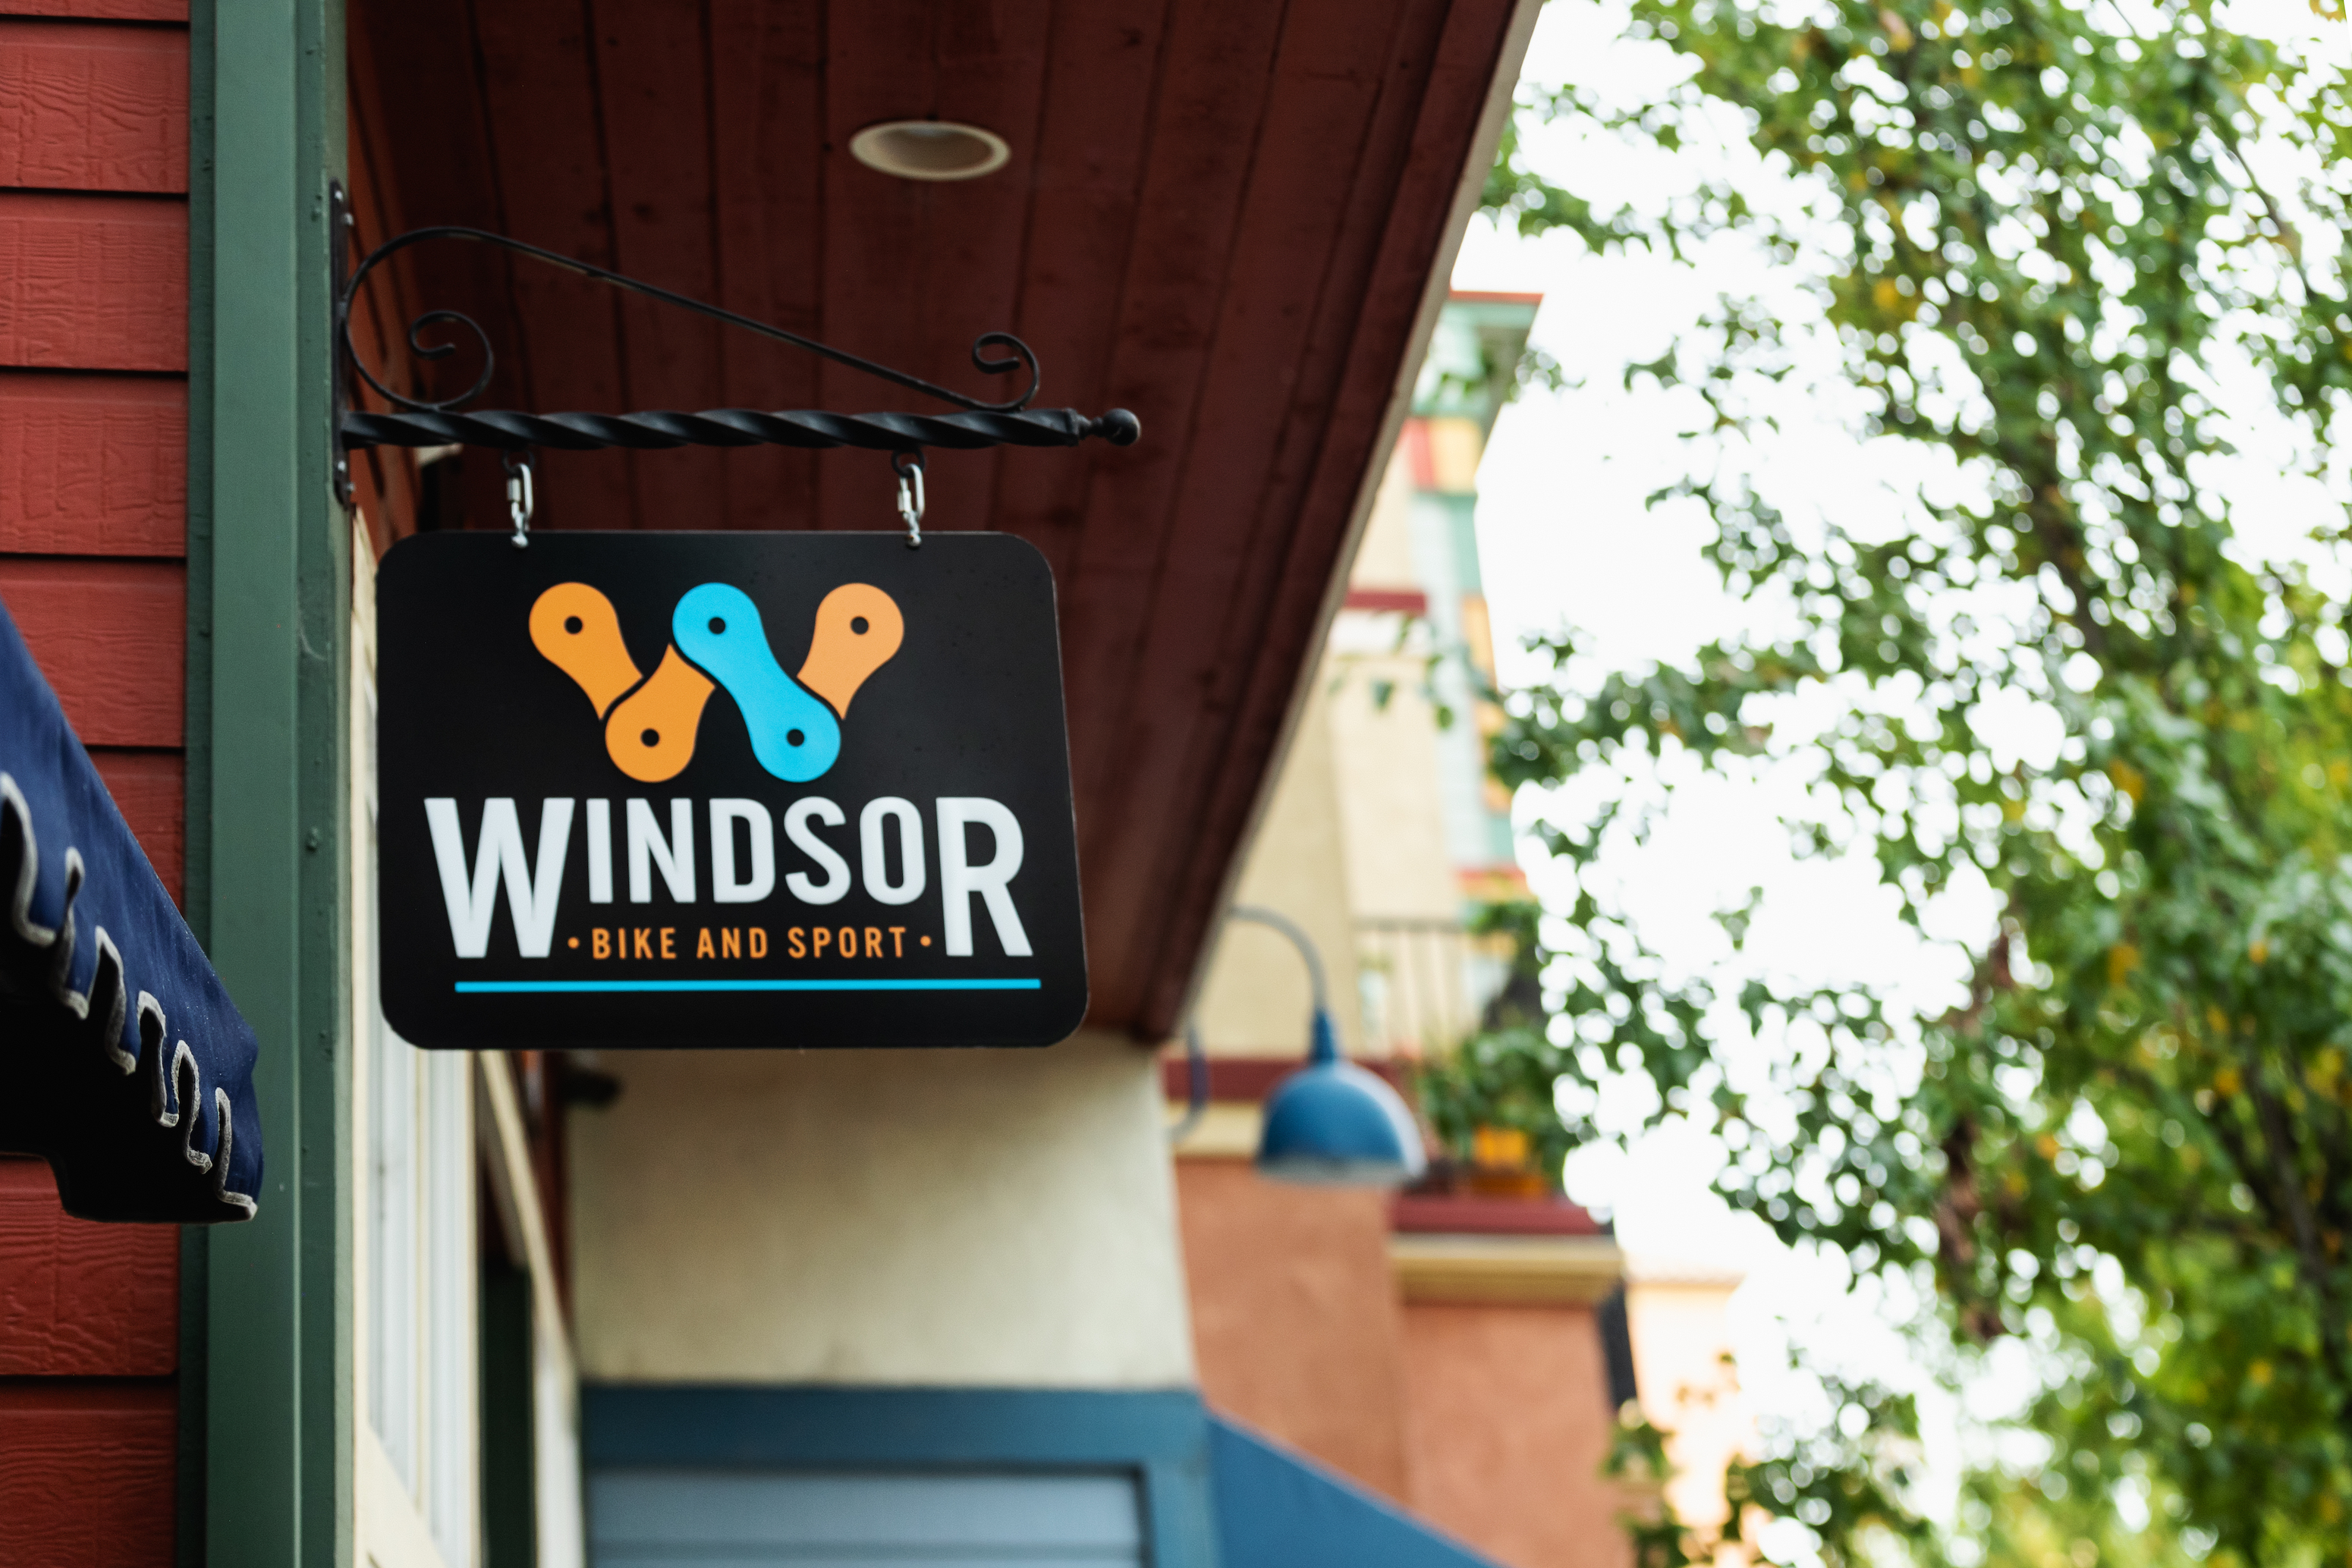 cities_towns_Windsor_by_Wildly_Simple_Sonoma_County_043